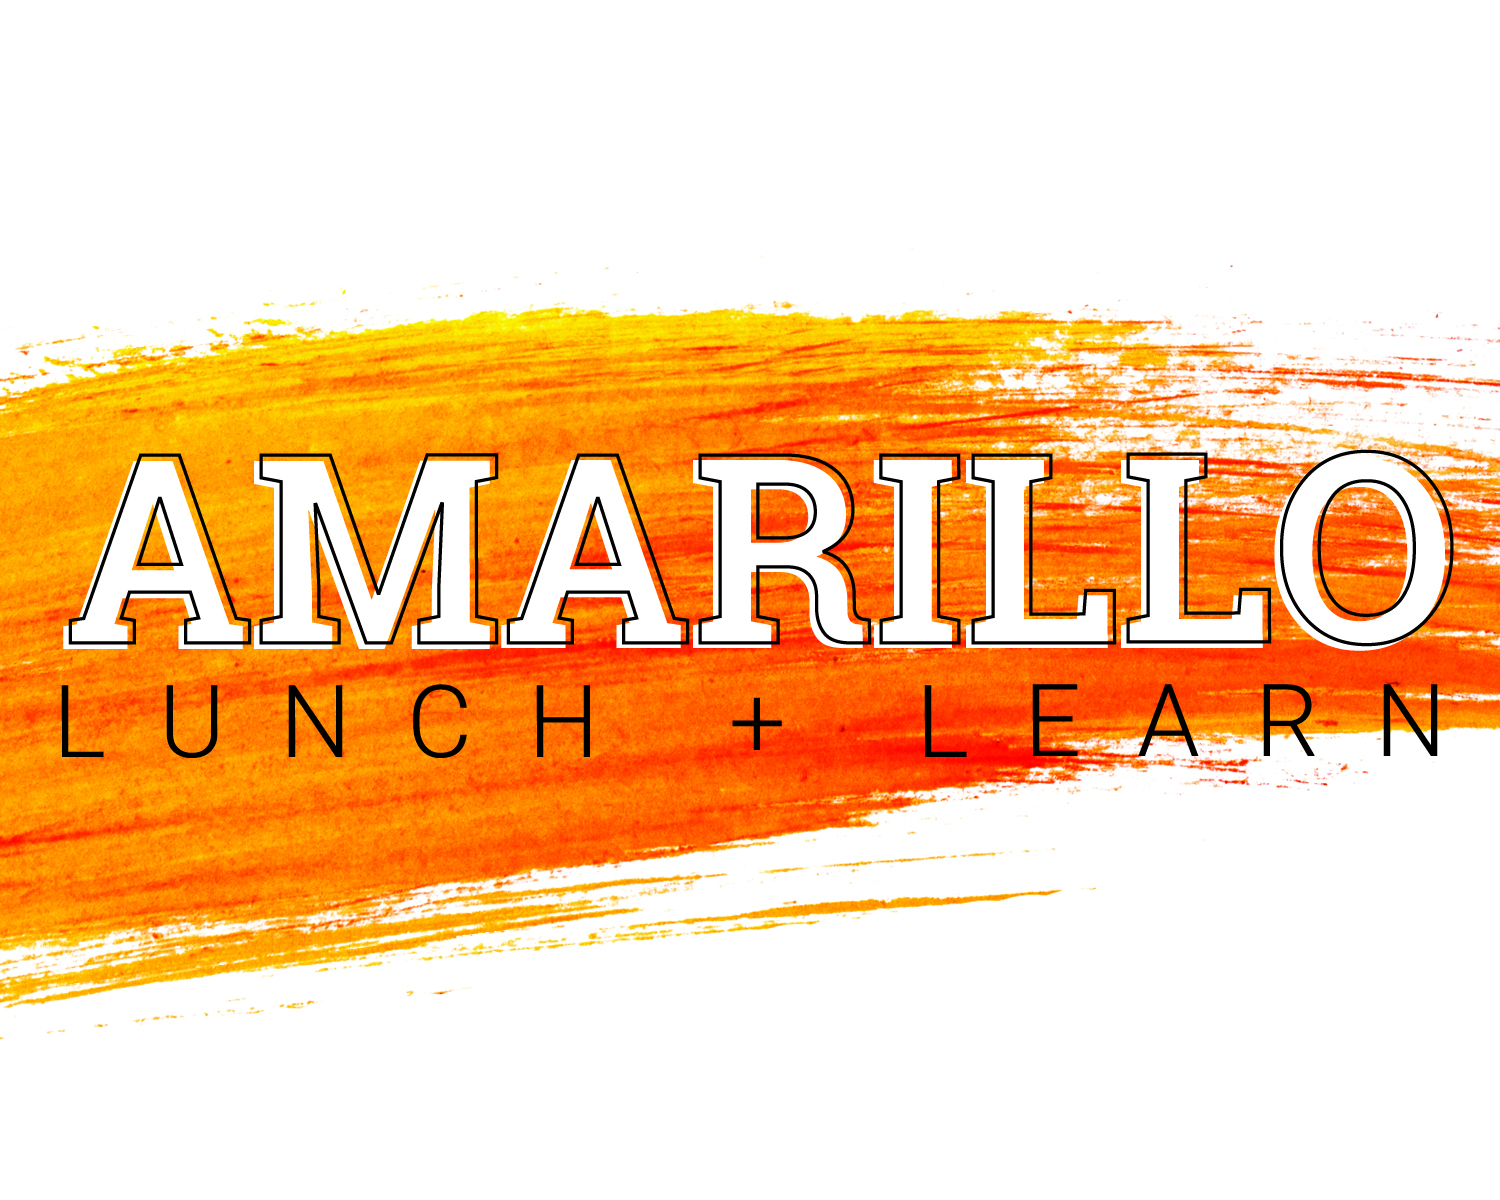 Lunch + Learn Amarillo